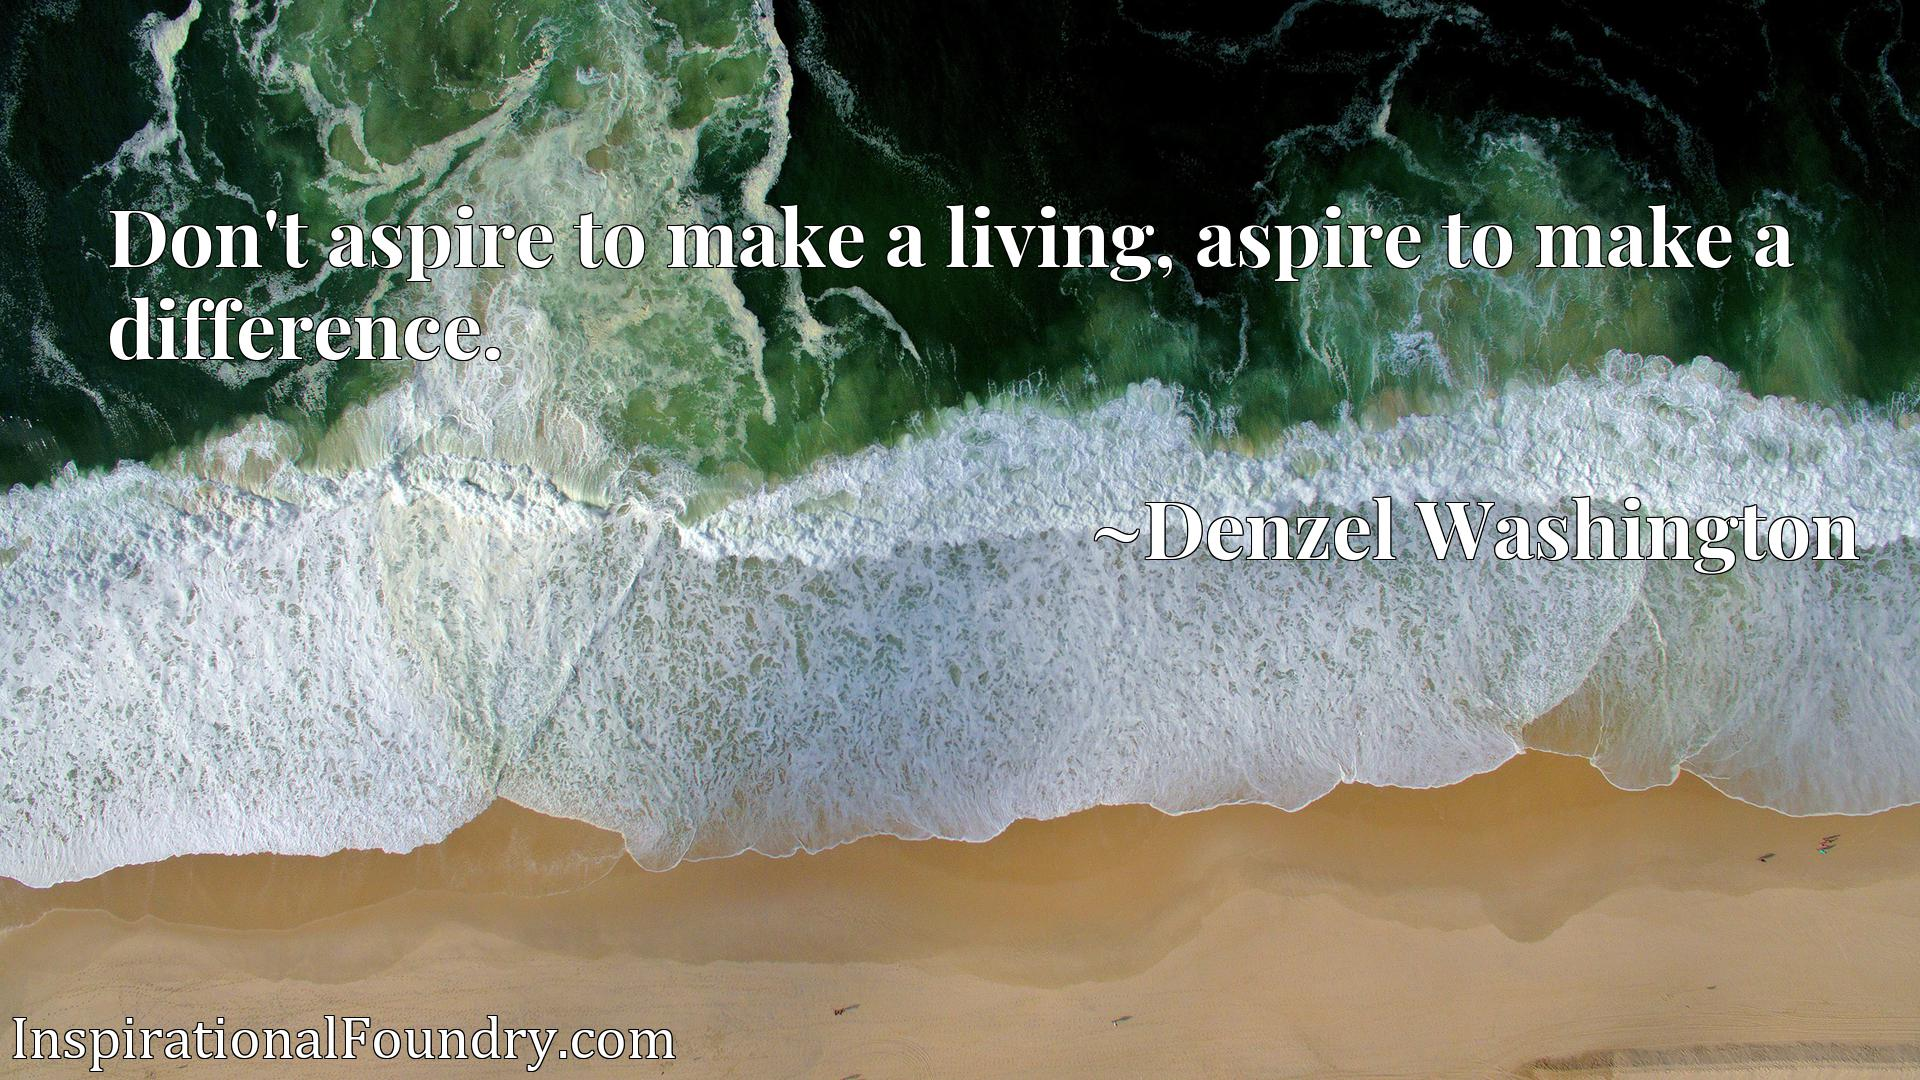 Don't aspire to make a living, aspire to make a difference.